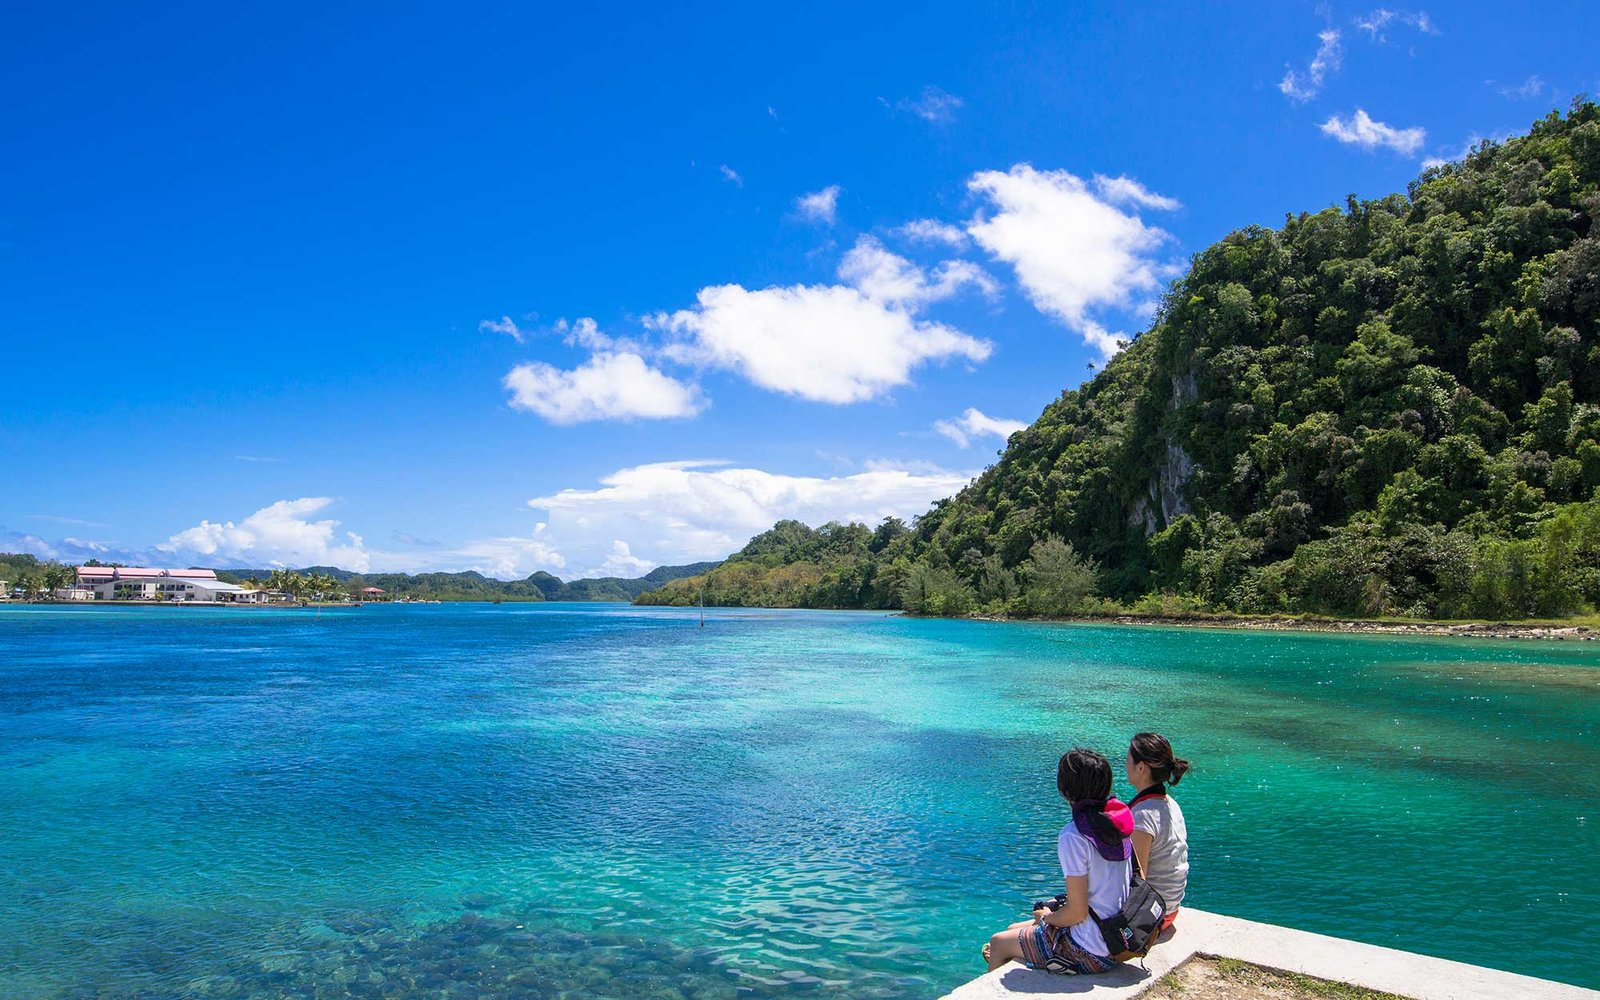 Travel to Palau - Palau Travel Guide It's a literal ... |Palau Vacation